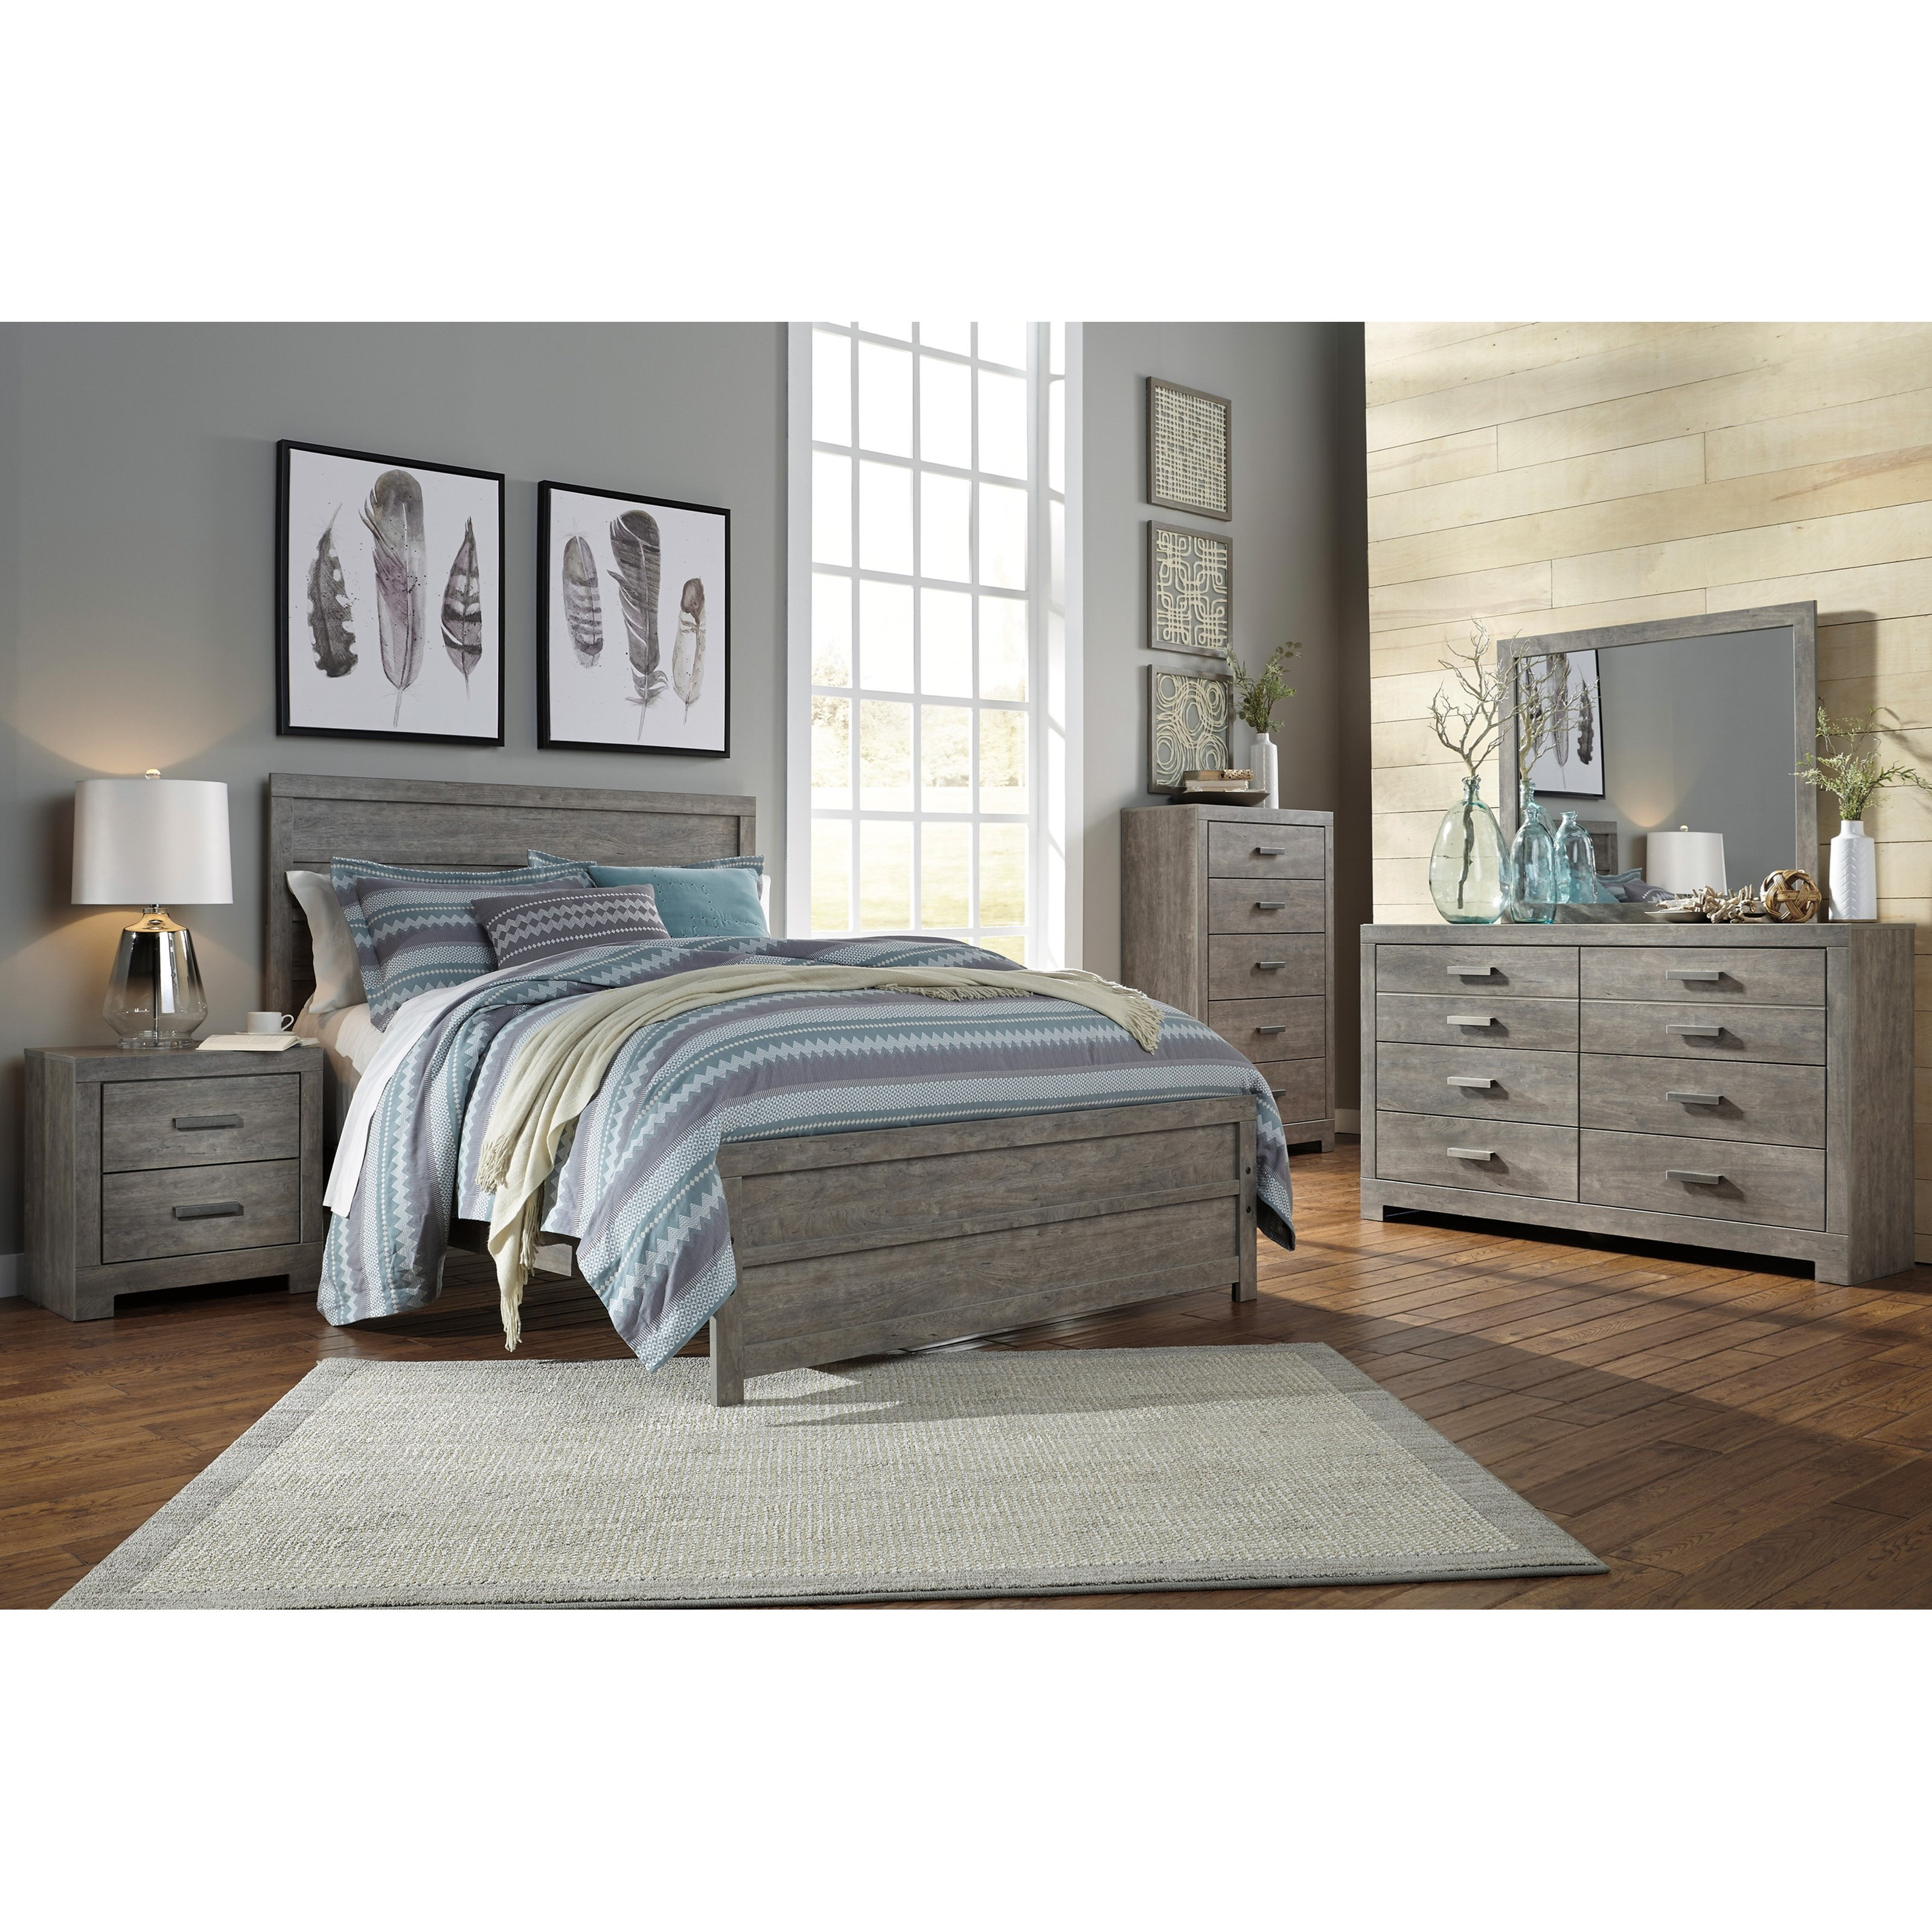 Signature Design By Ashley Culverbach Queen Bedroom Group Value City Furniture Bedroom Groups